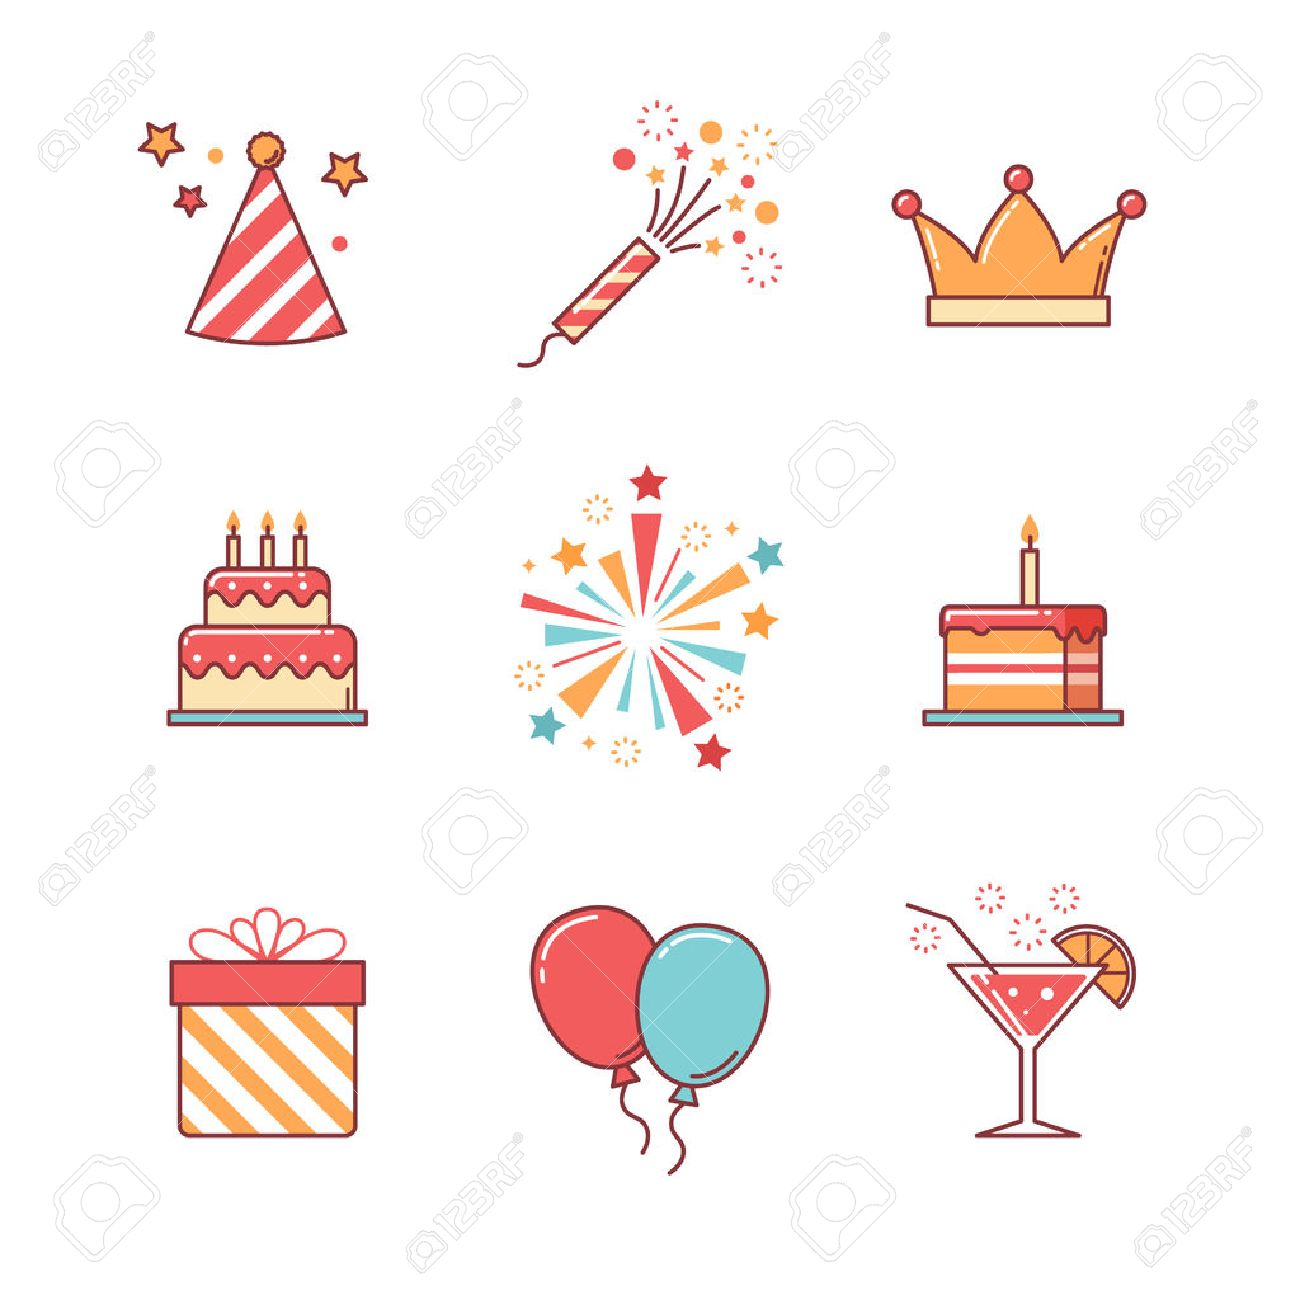 Birthday icons thin line set. Celebration event, cake and fireworks. Flat style color vector symbols isolated on white. Stock Vector - 47050513